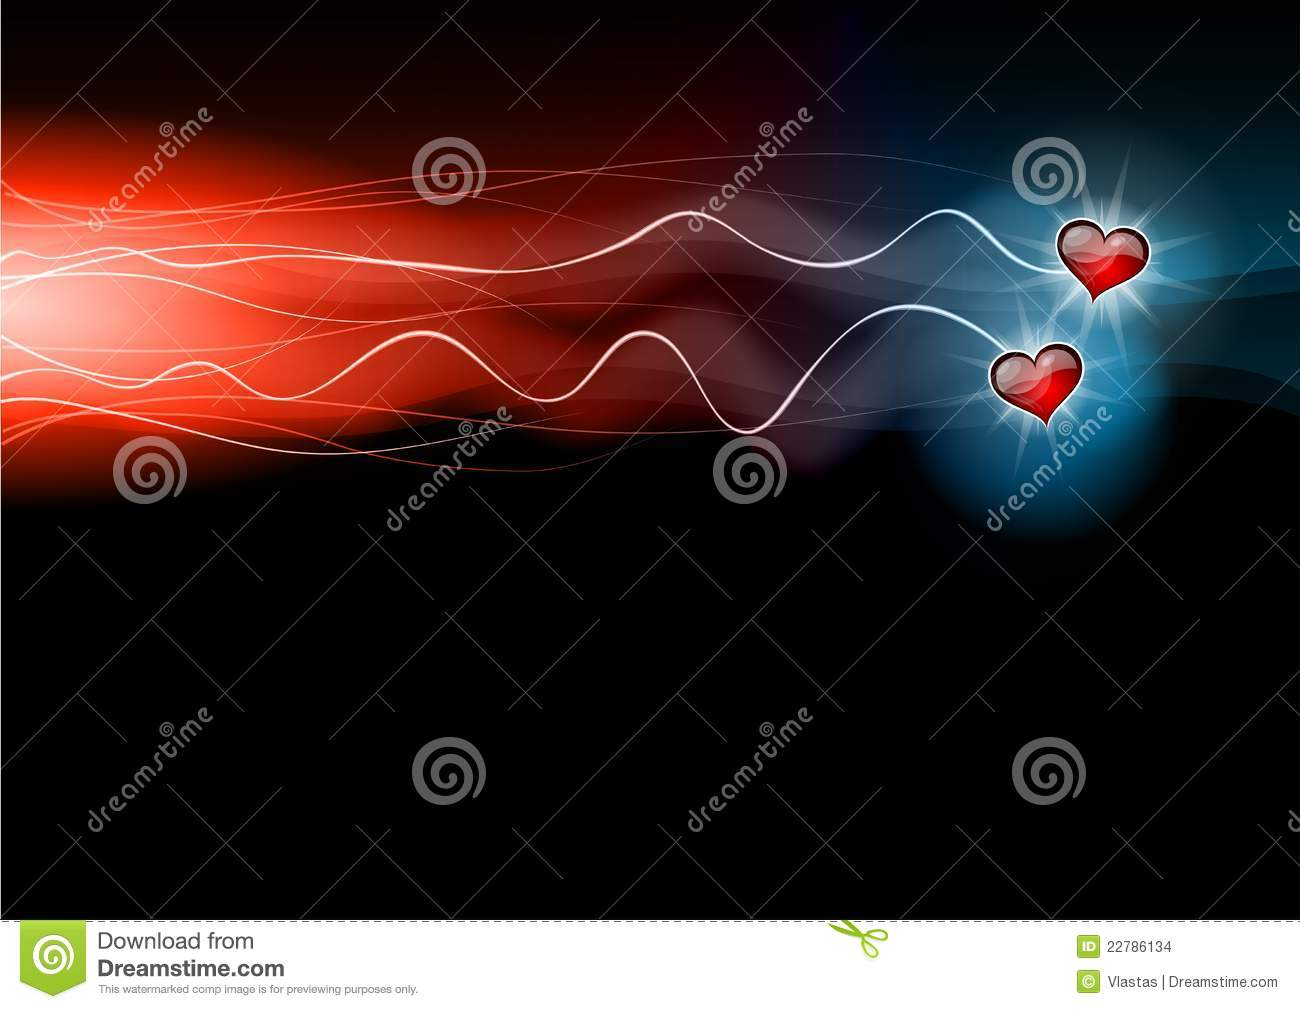 Flashing heart clipart picture royalty free library Flashing heart clipart - ClipartFest picture royalty free library